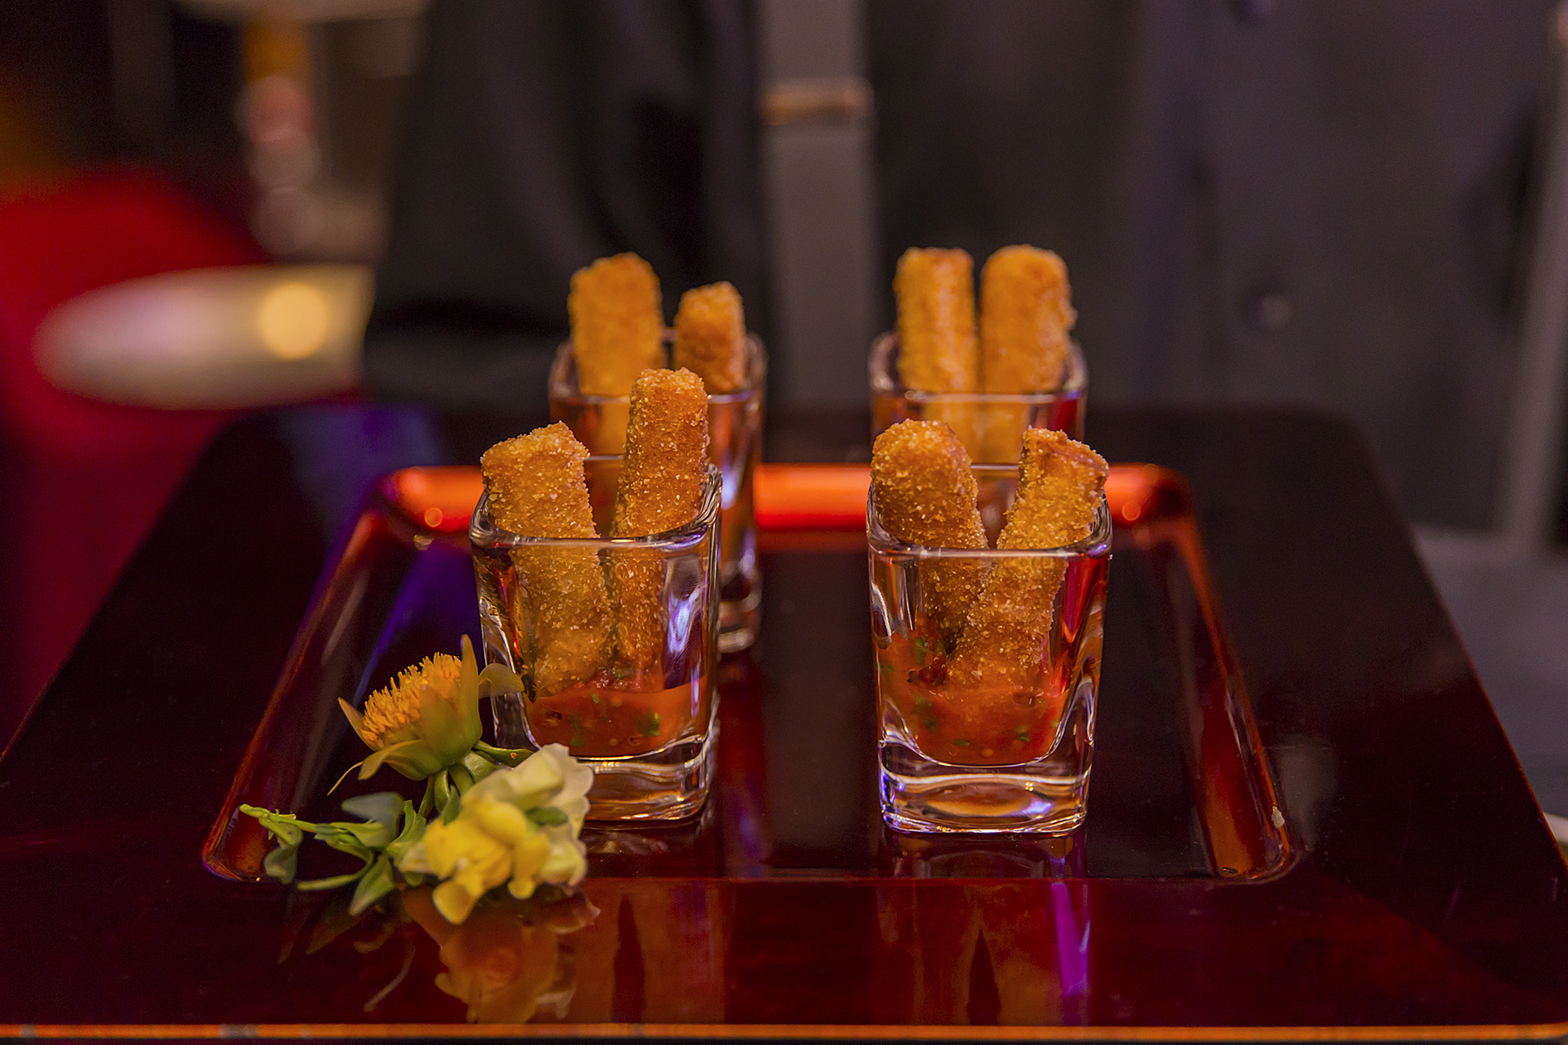 Chickpea fries with marinara served in glasses